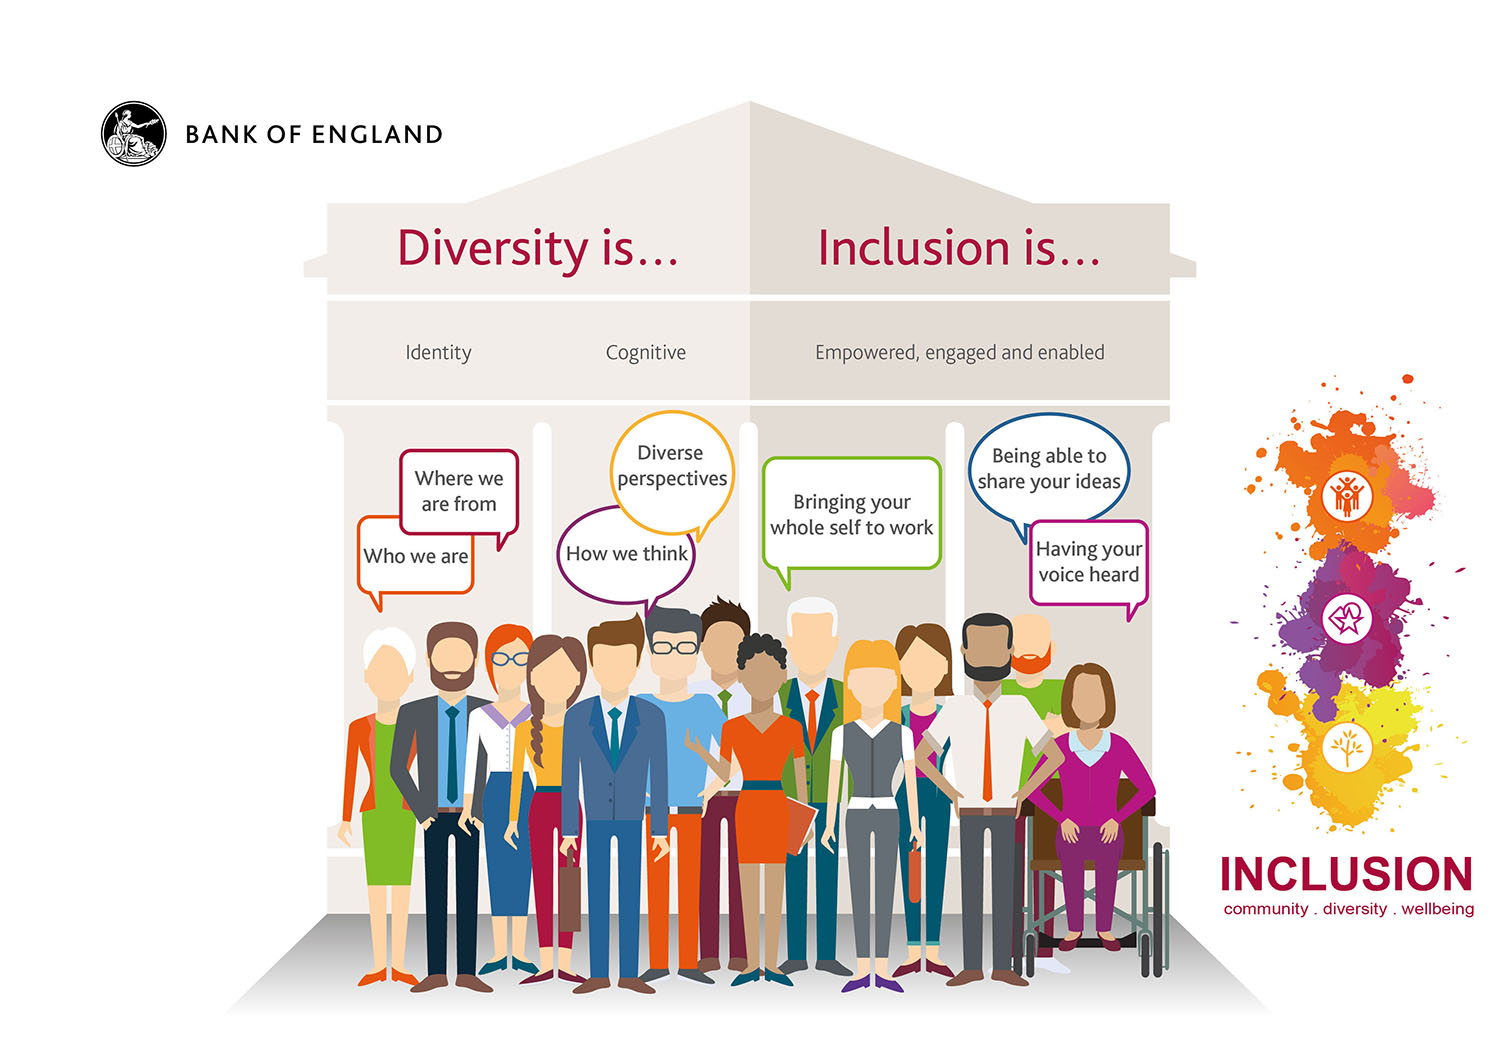 thinking about diversity and inclusion essay Thinking about diversity and inclusion this essay thinking about diversity and inclusion and other 63,000+ term papers, college essay examples and free essays are available now on reviewessayscom autor: alvinsharp • july 1, 2013 • essay • 550 words (3 pages) • 838 views.